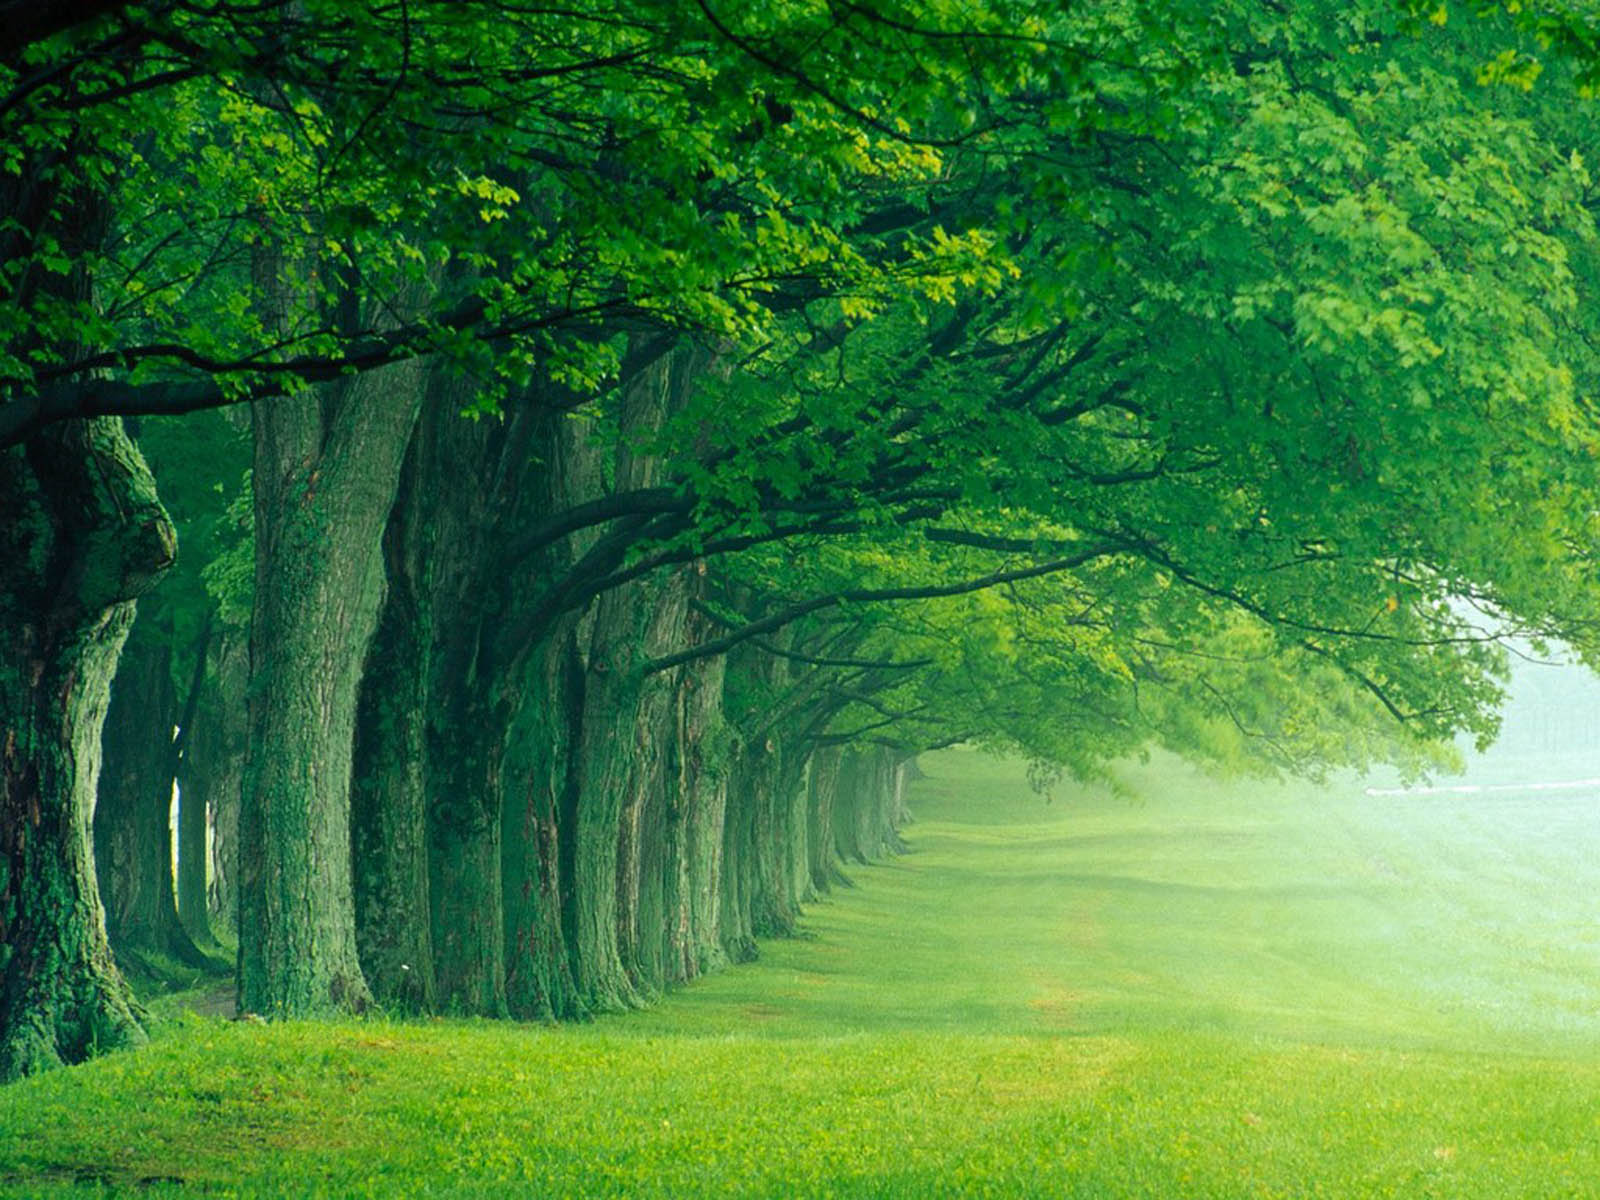 Tag Trees Wallpapers Images Photos Pictures and Backgrounds for 1600x1200